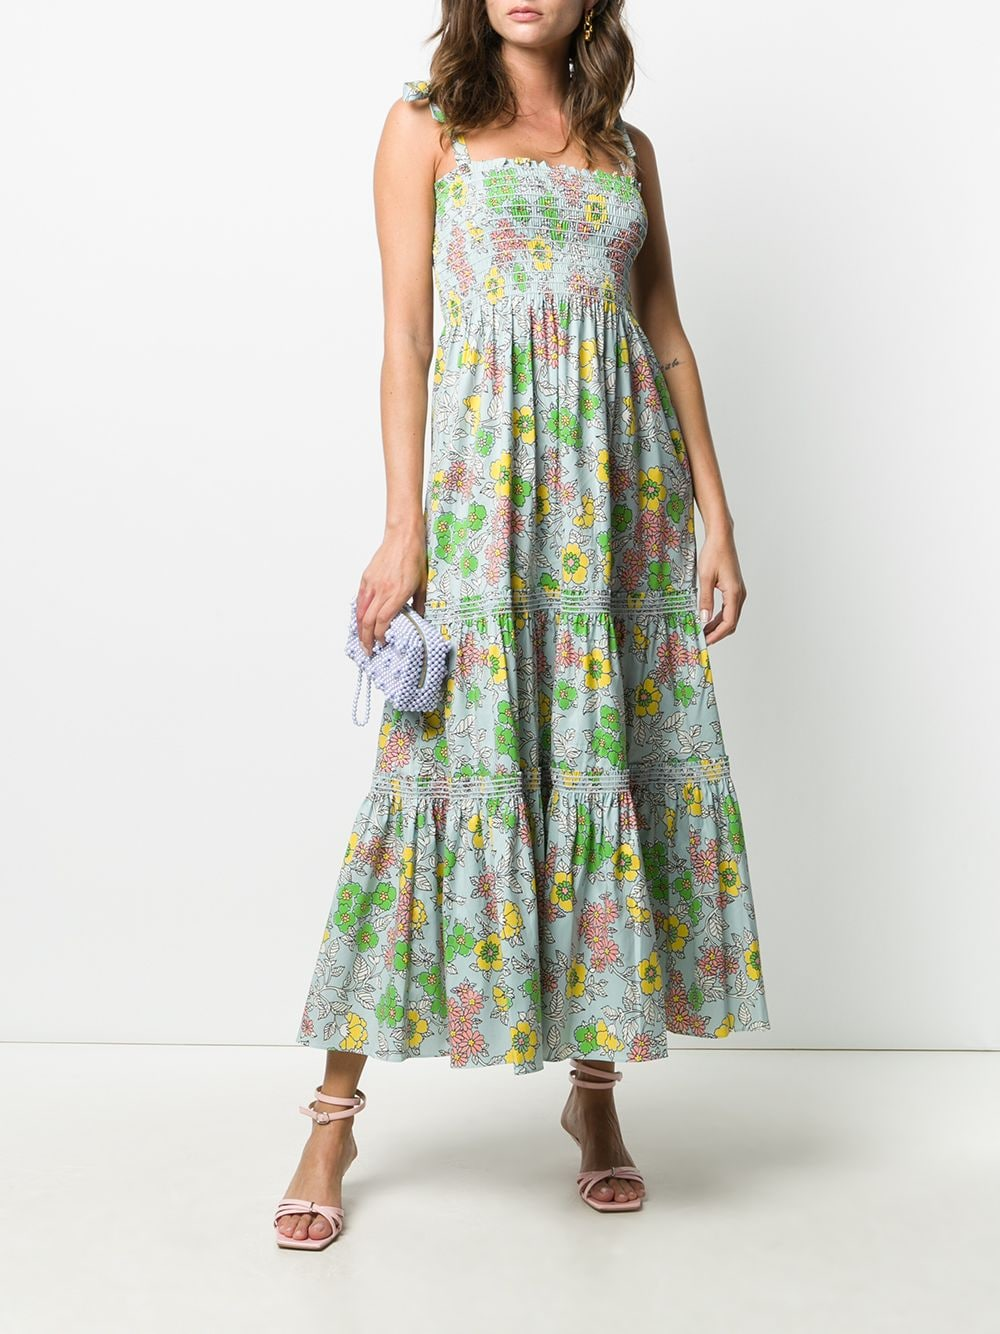 Picture of Tory Burch | Printed Tie-Shoulder Dress